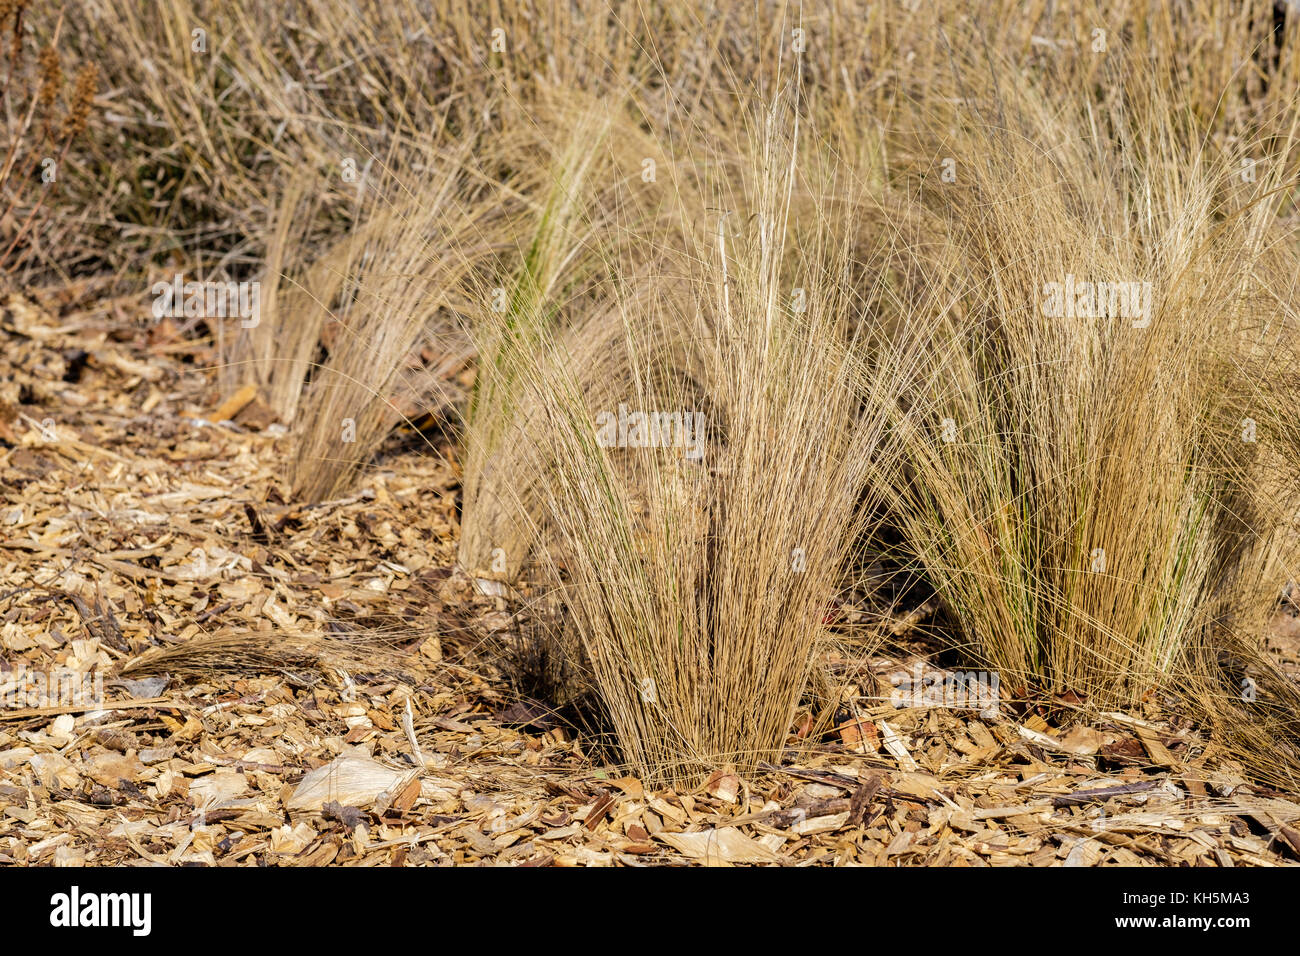 Dead Mexican feathergrass,Nassella tenuissima, after a freeze in Oklahoma, USA. - Stock Image